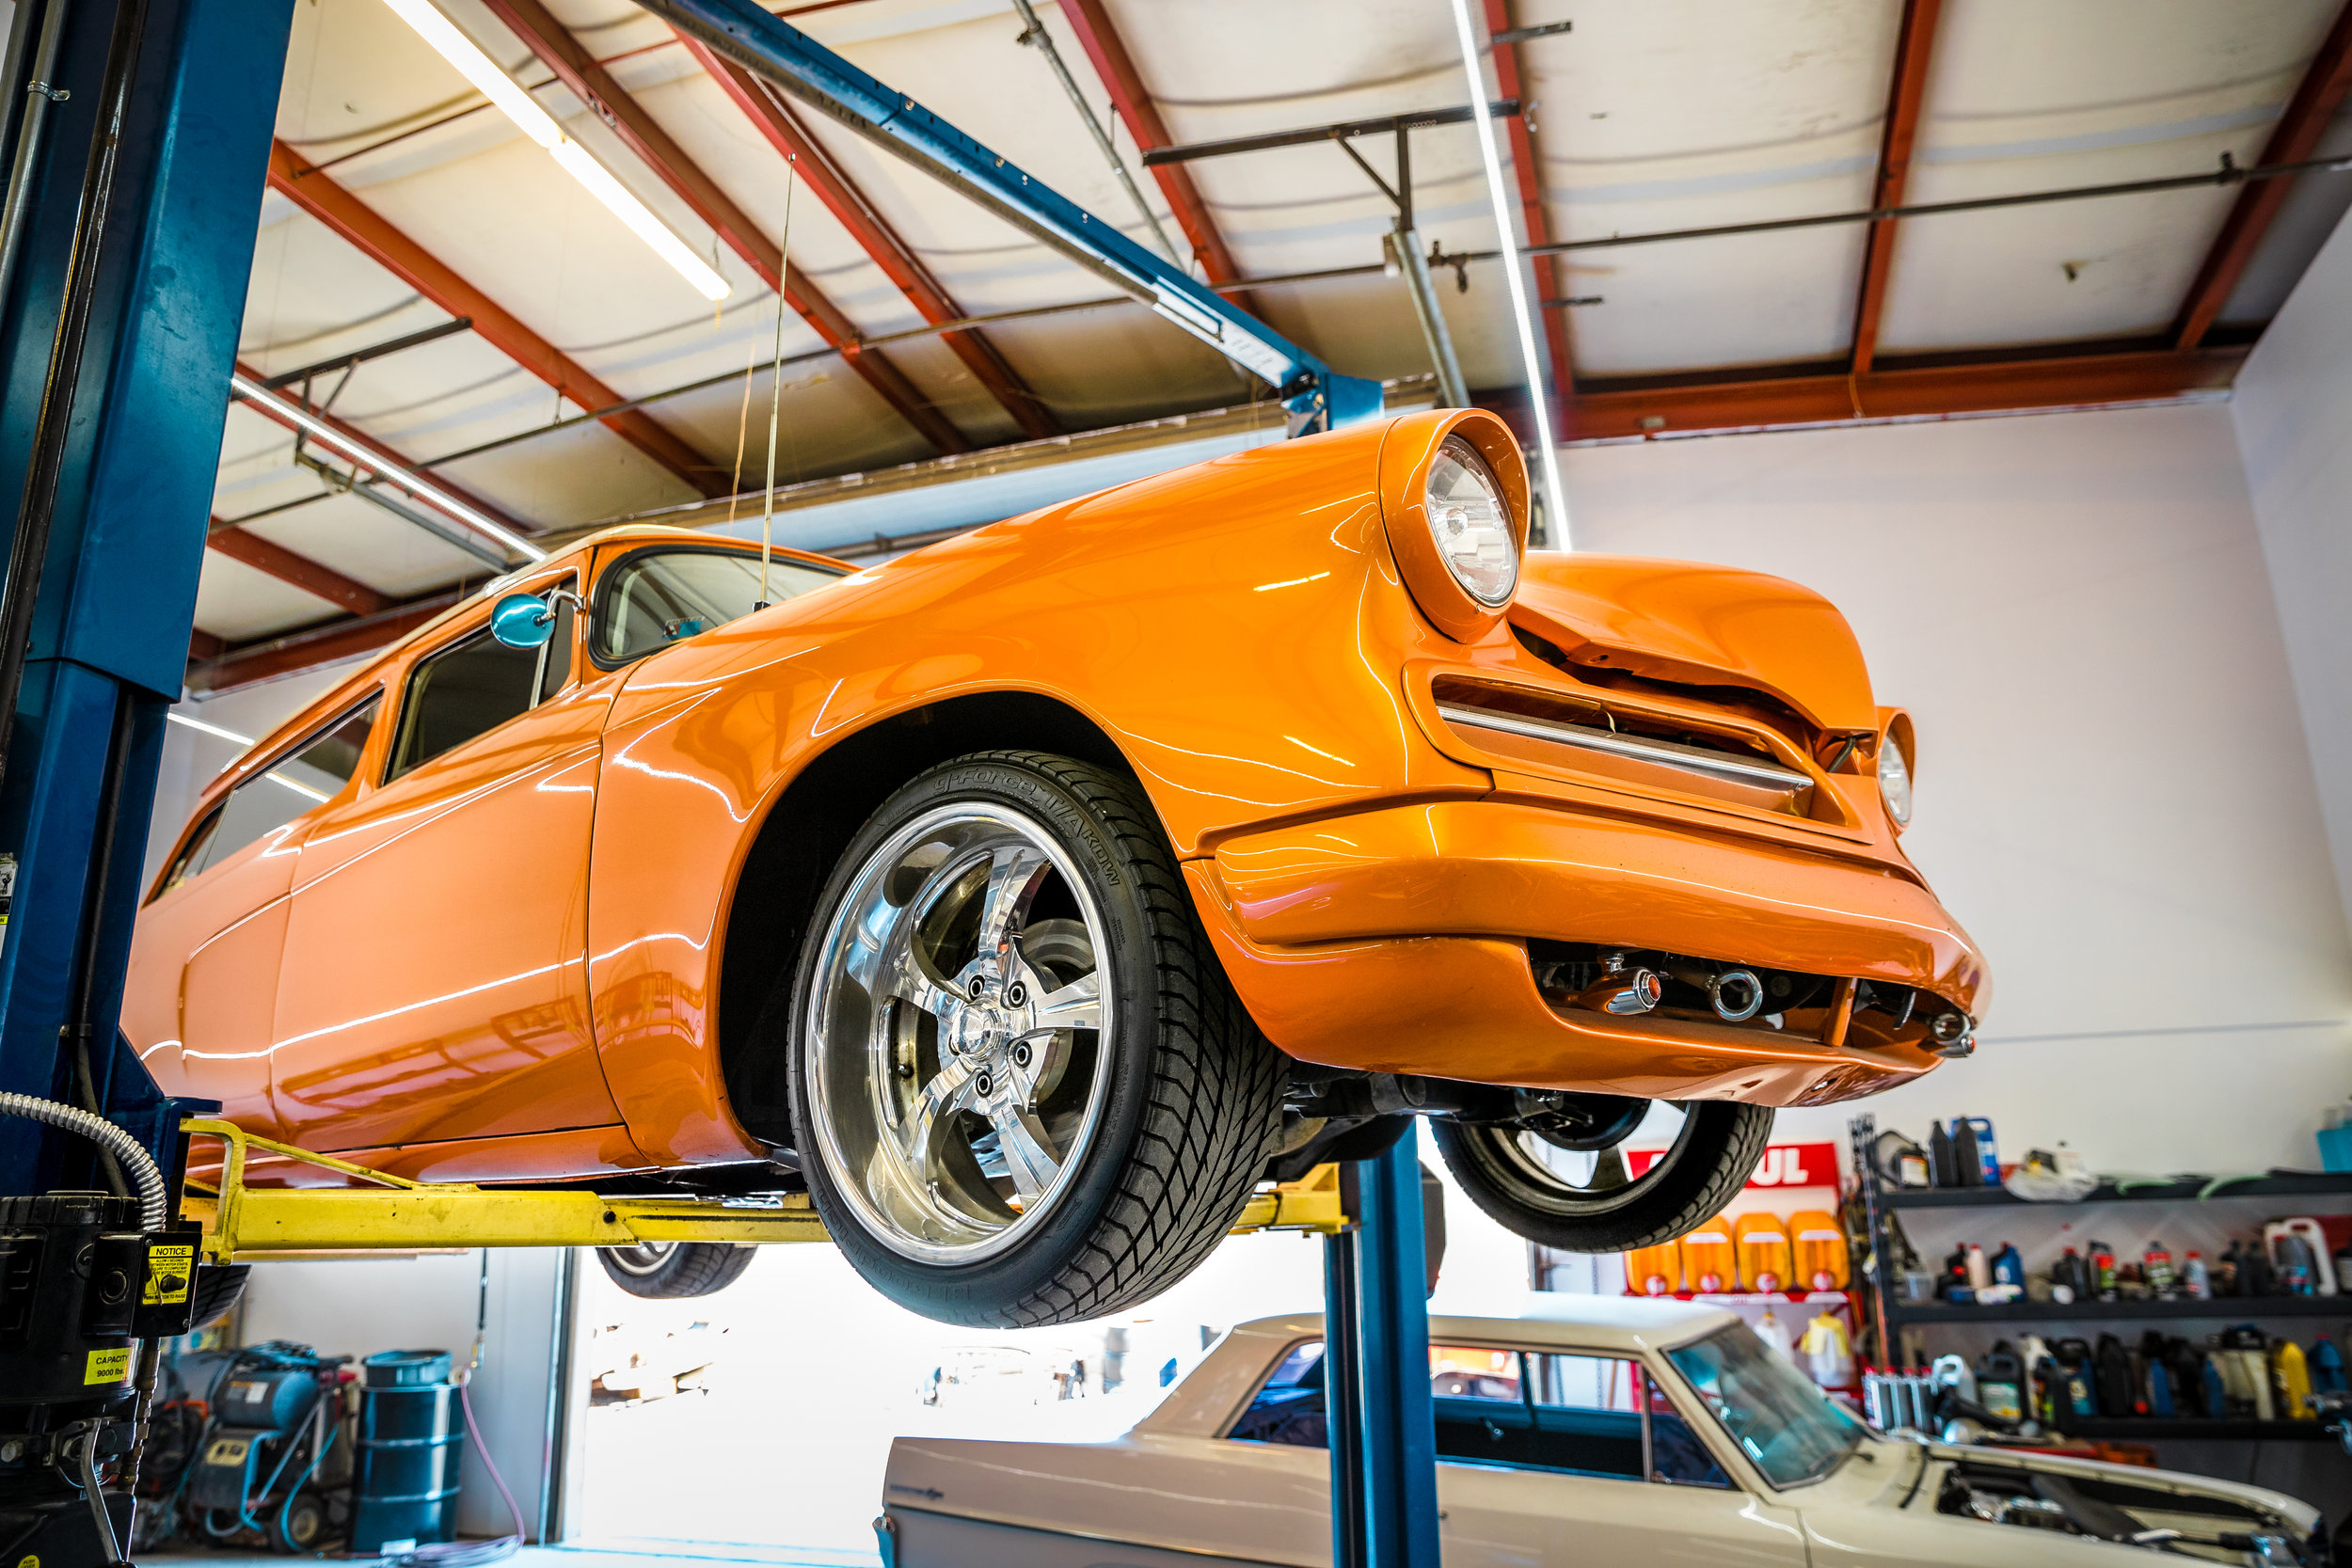 Highline_DrewsGarage_Nov2017-8.jpg